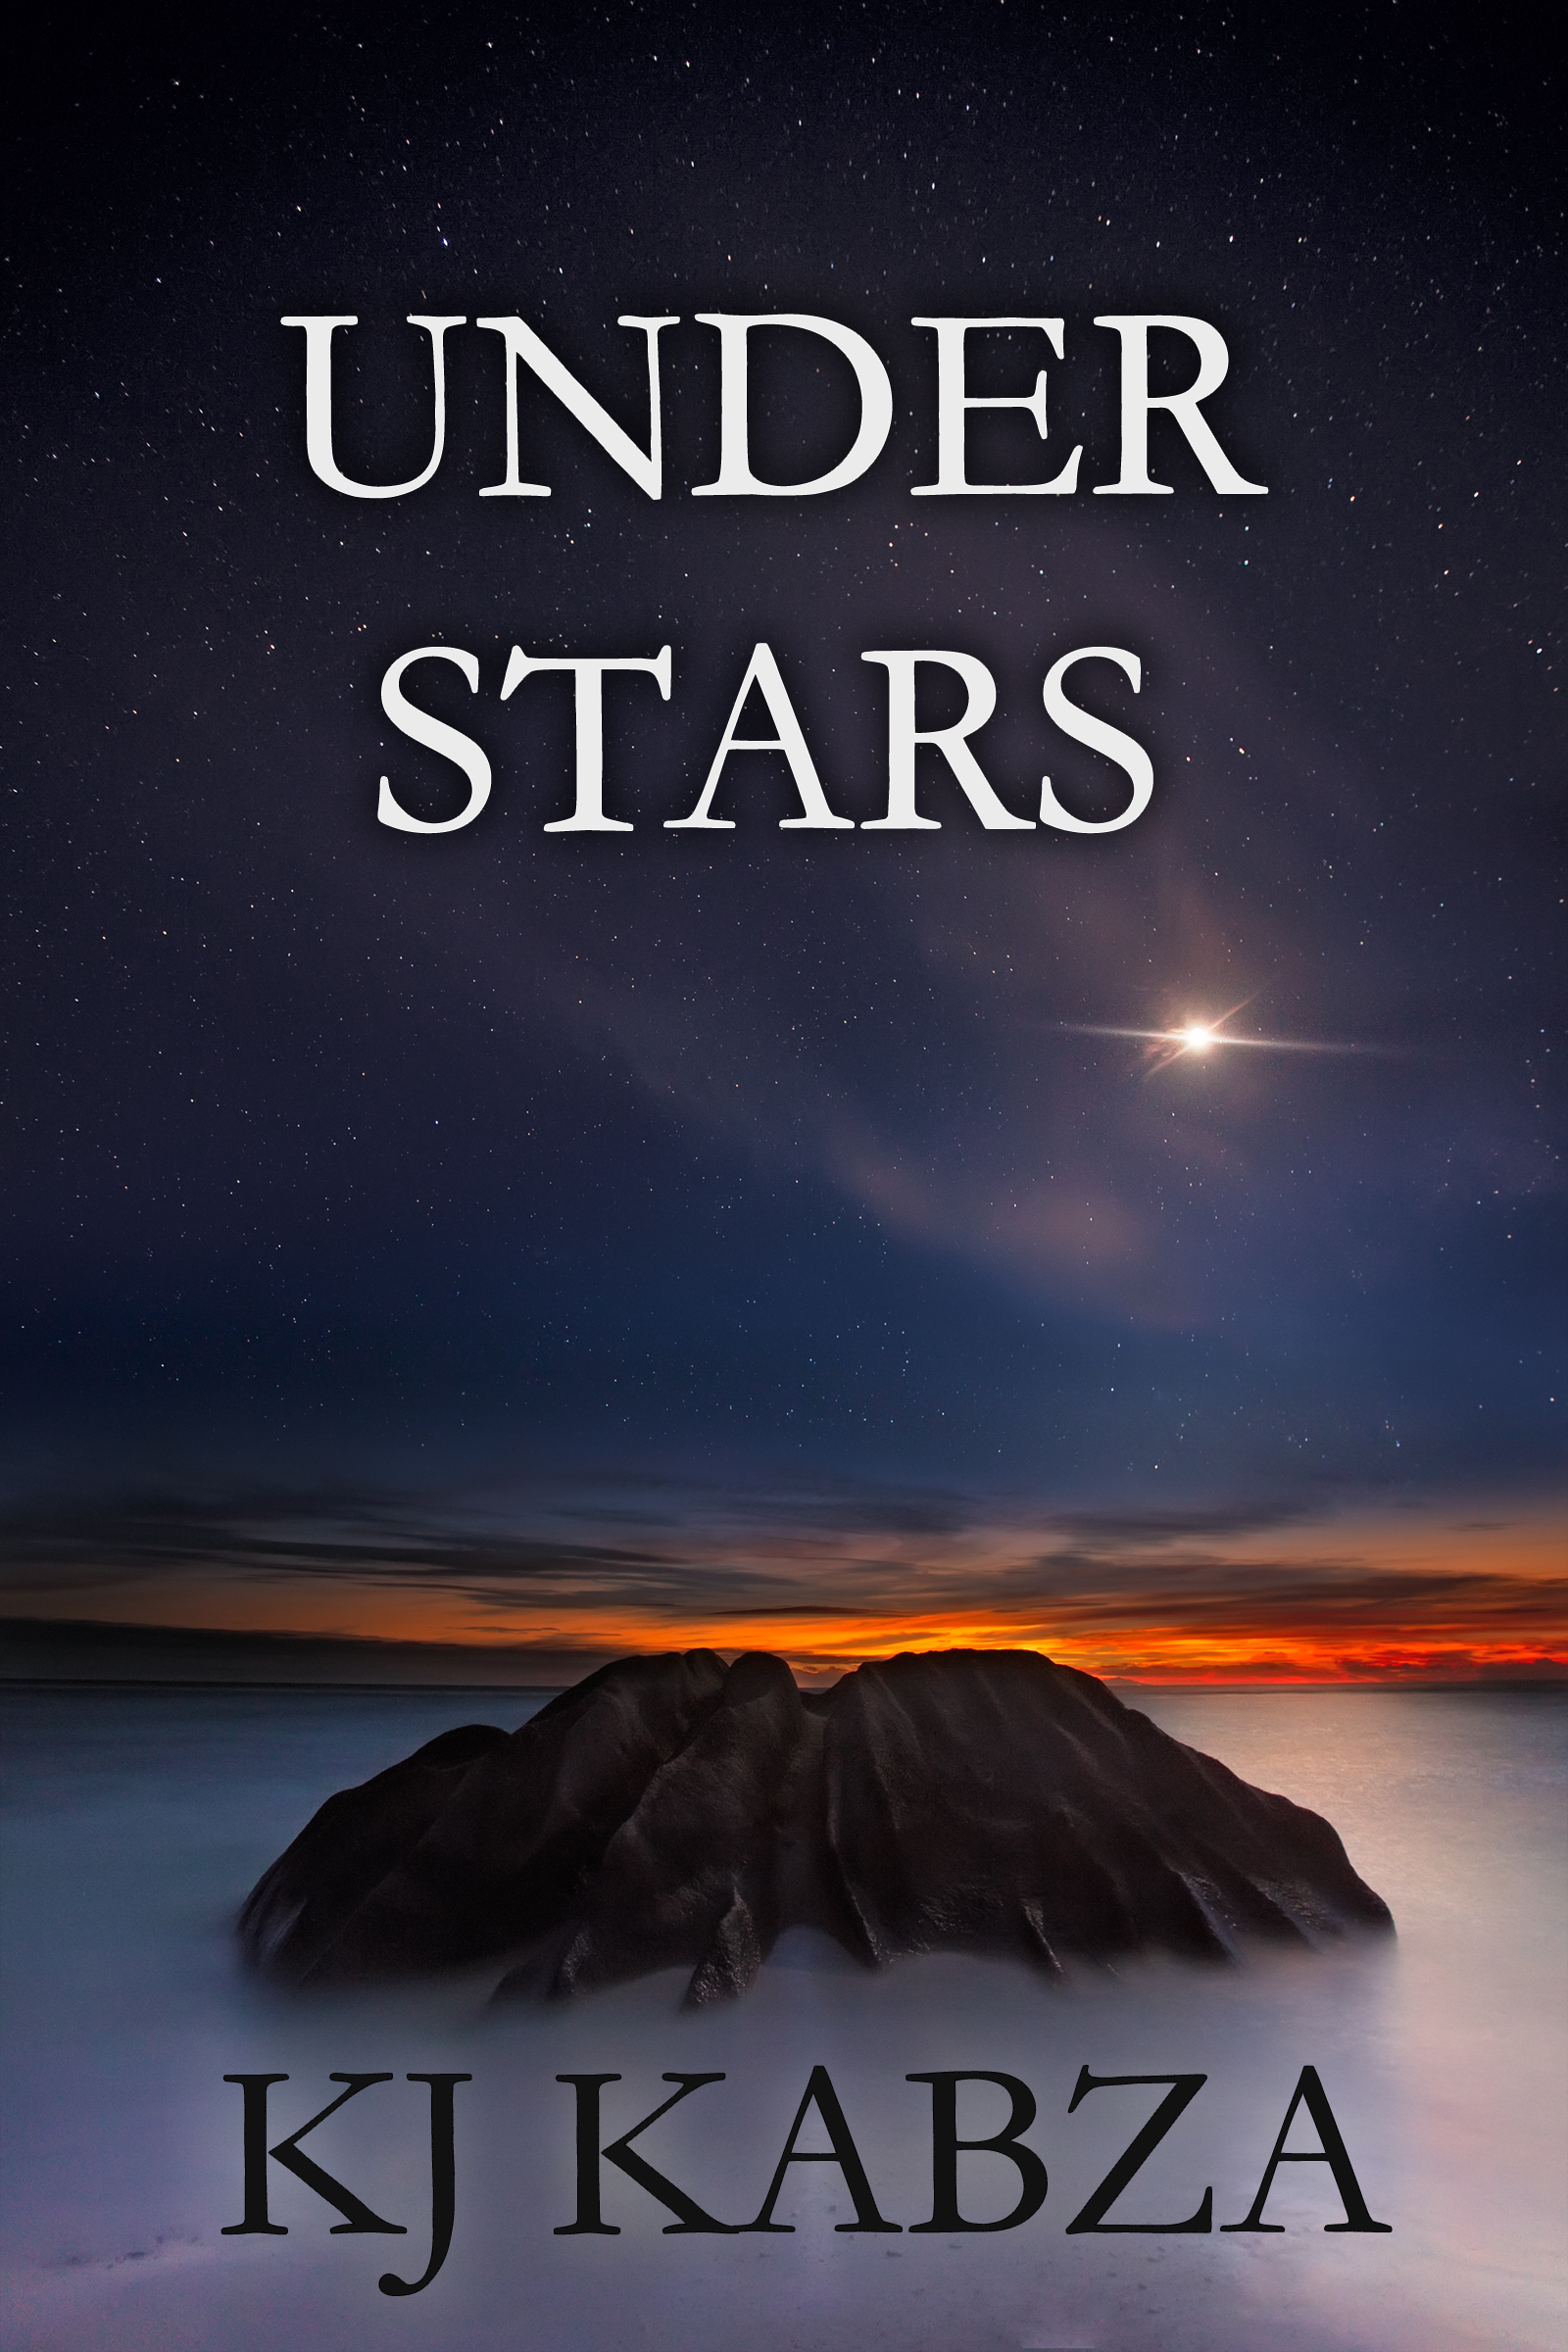 Under stars by kj kabza cover